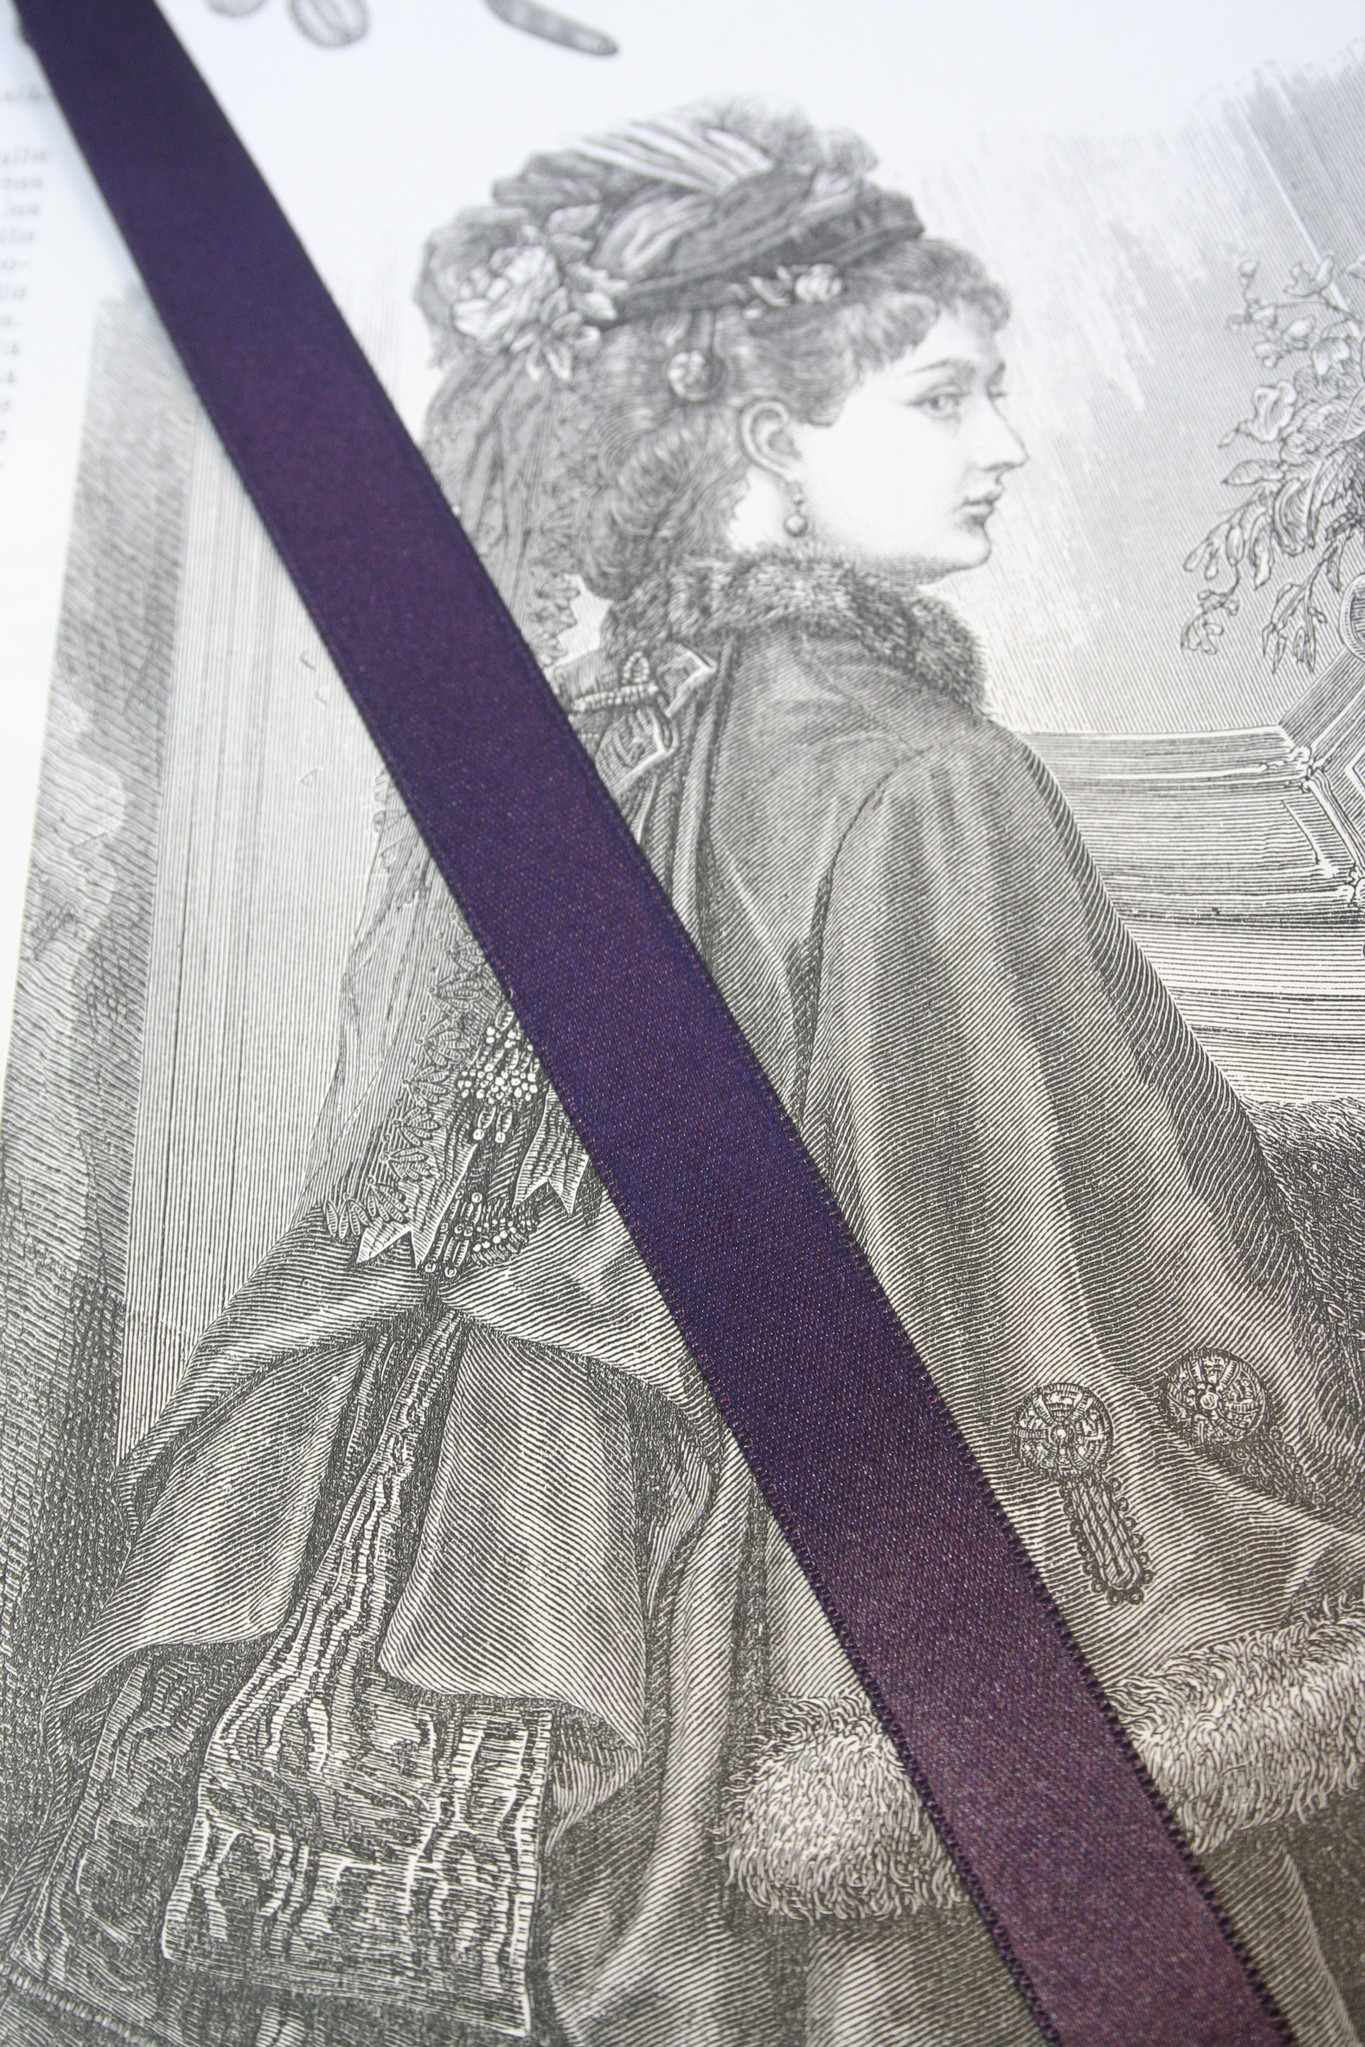 Eggplant Purple satin ribbon.